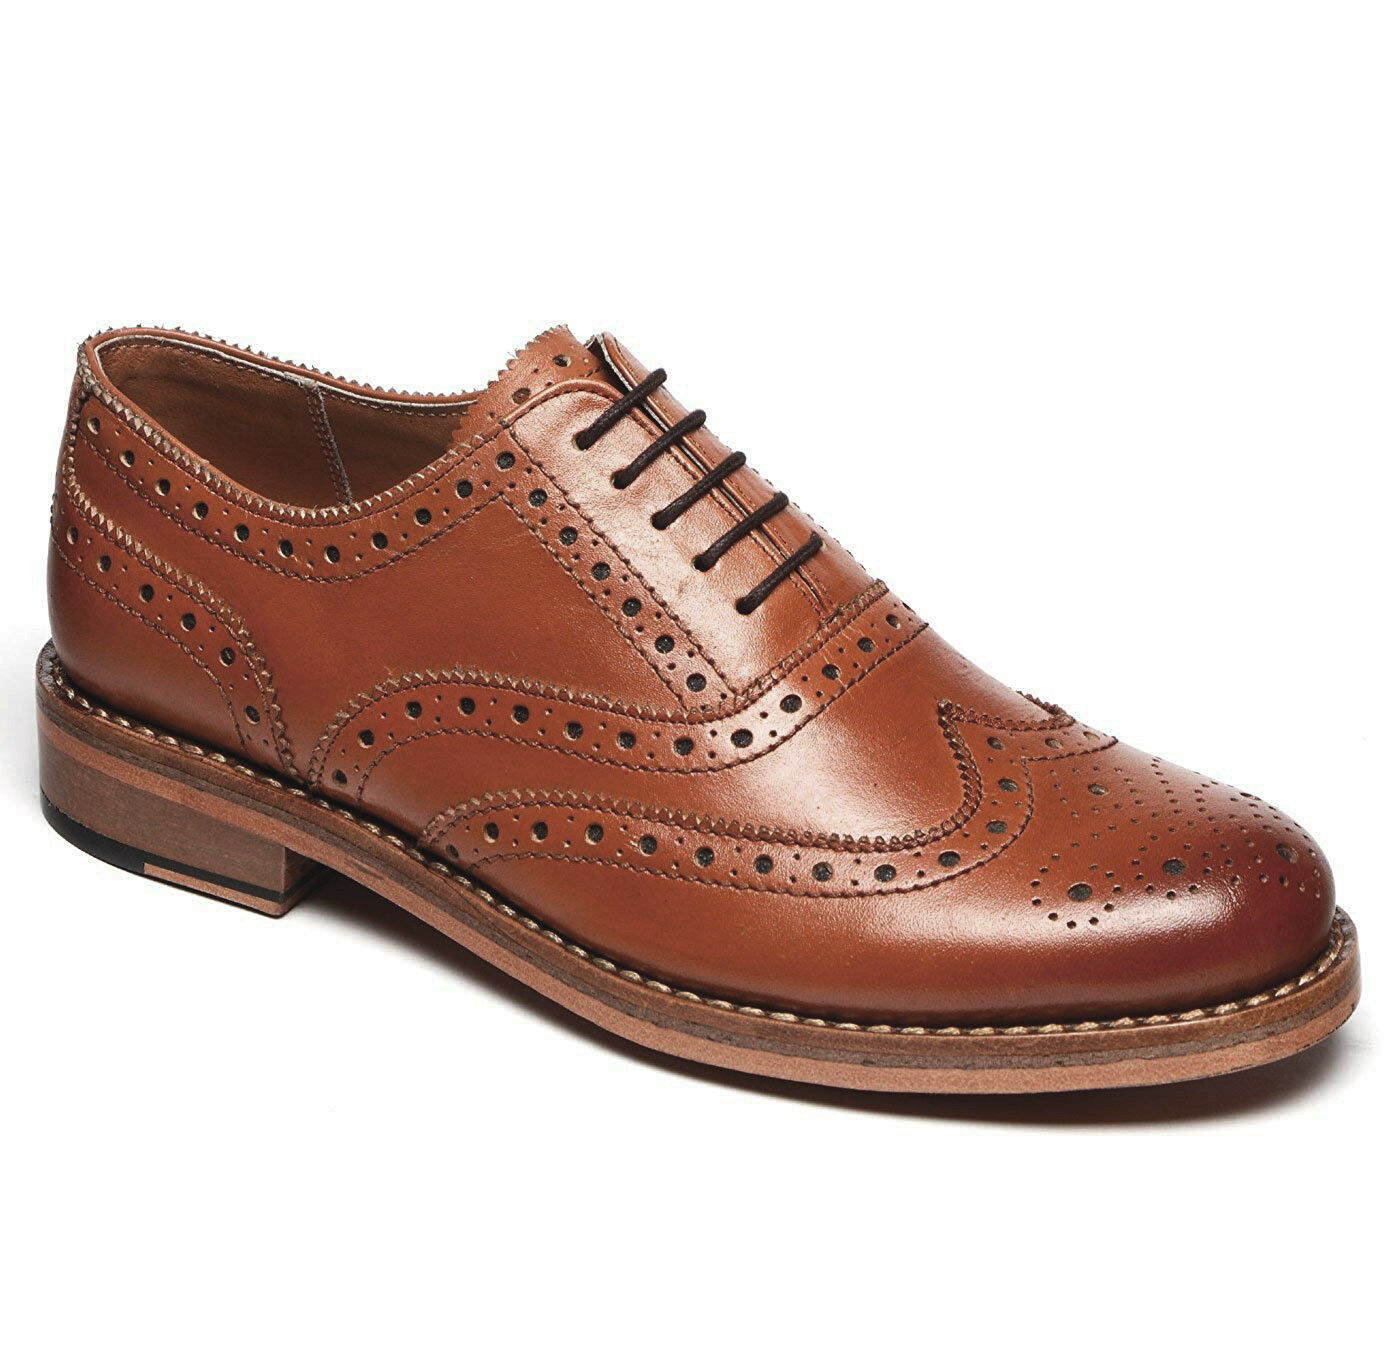 Mens Traditional Brogues in Tan - Genuine Leather Goodyear Welted schuhe